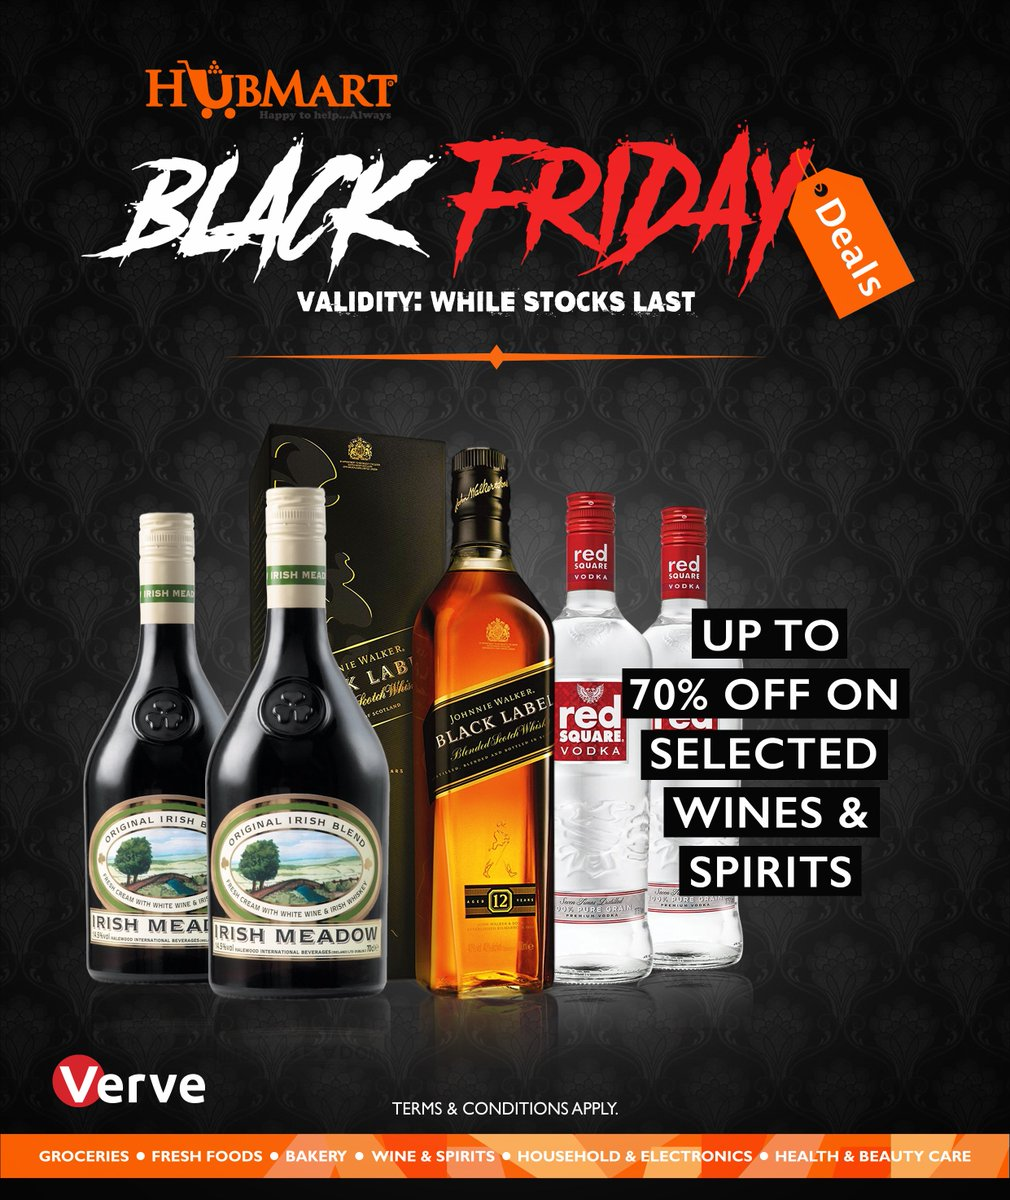 Verve Card On Twitter Still In The Black Friday Season We Are Giving Upto 70 Off Wines And Spirits When You Shop At Hubmart Store Don T Miss This Amazing Deal Blackfriday Vervecard